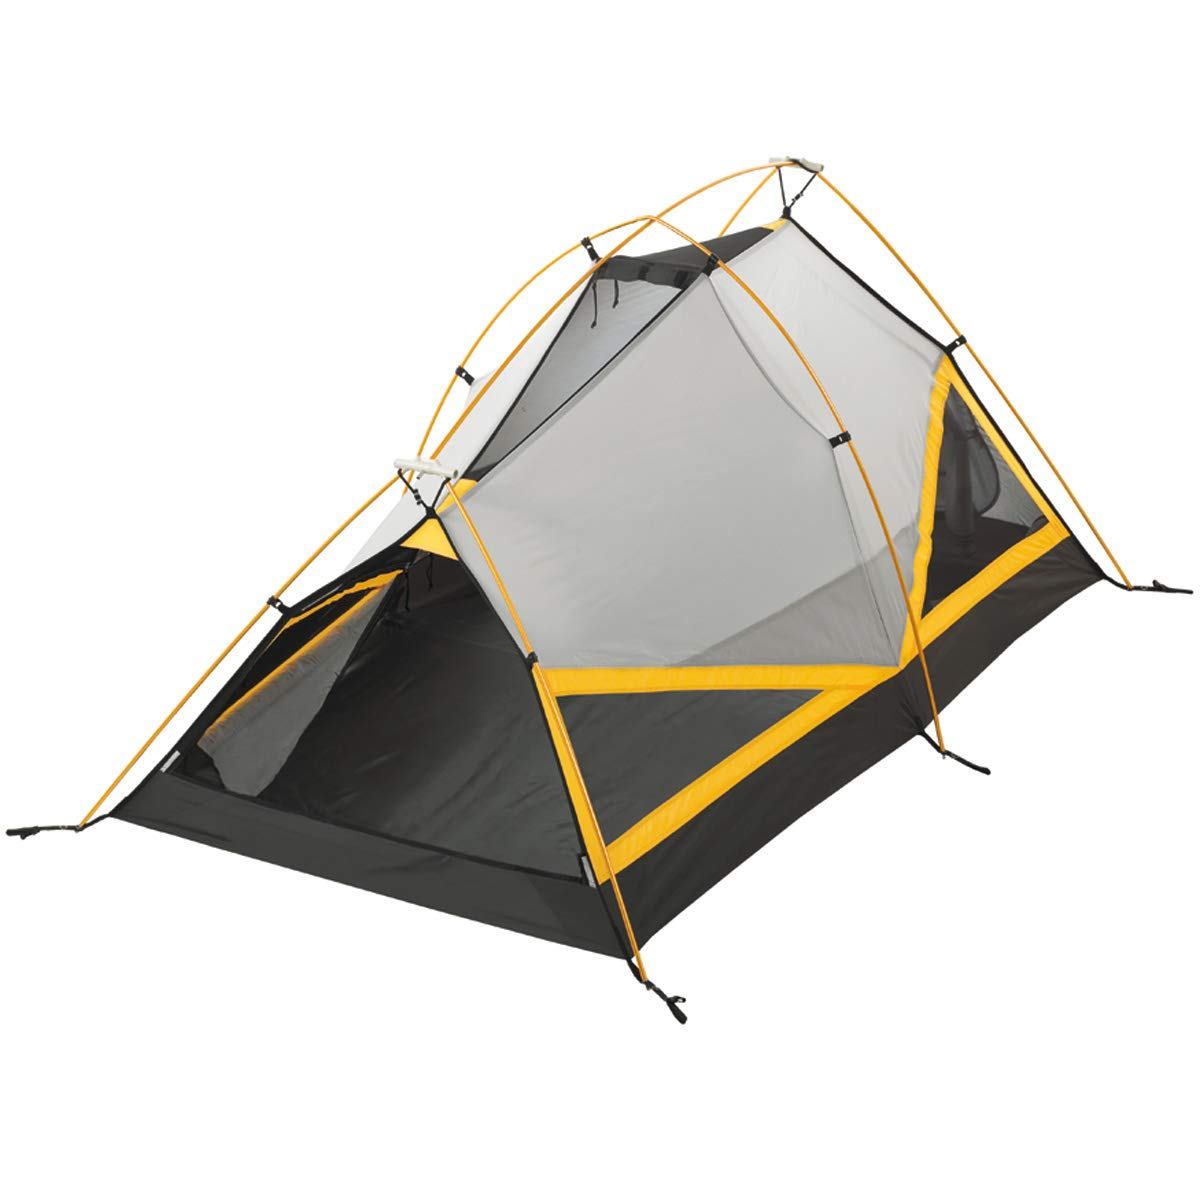 Eureka Alpenlite 2XT Tent: 2-Person 4-Season